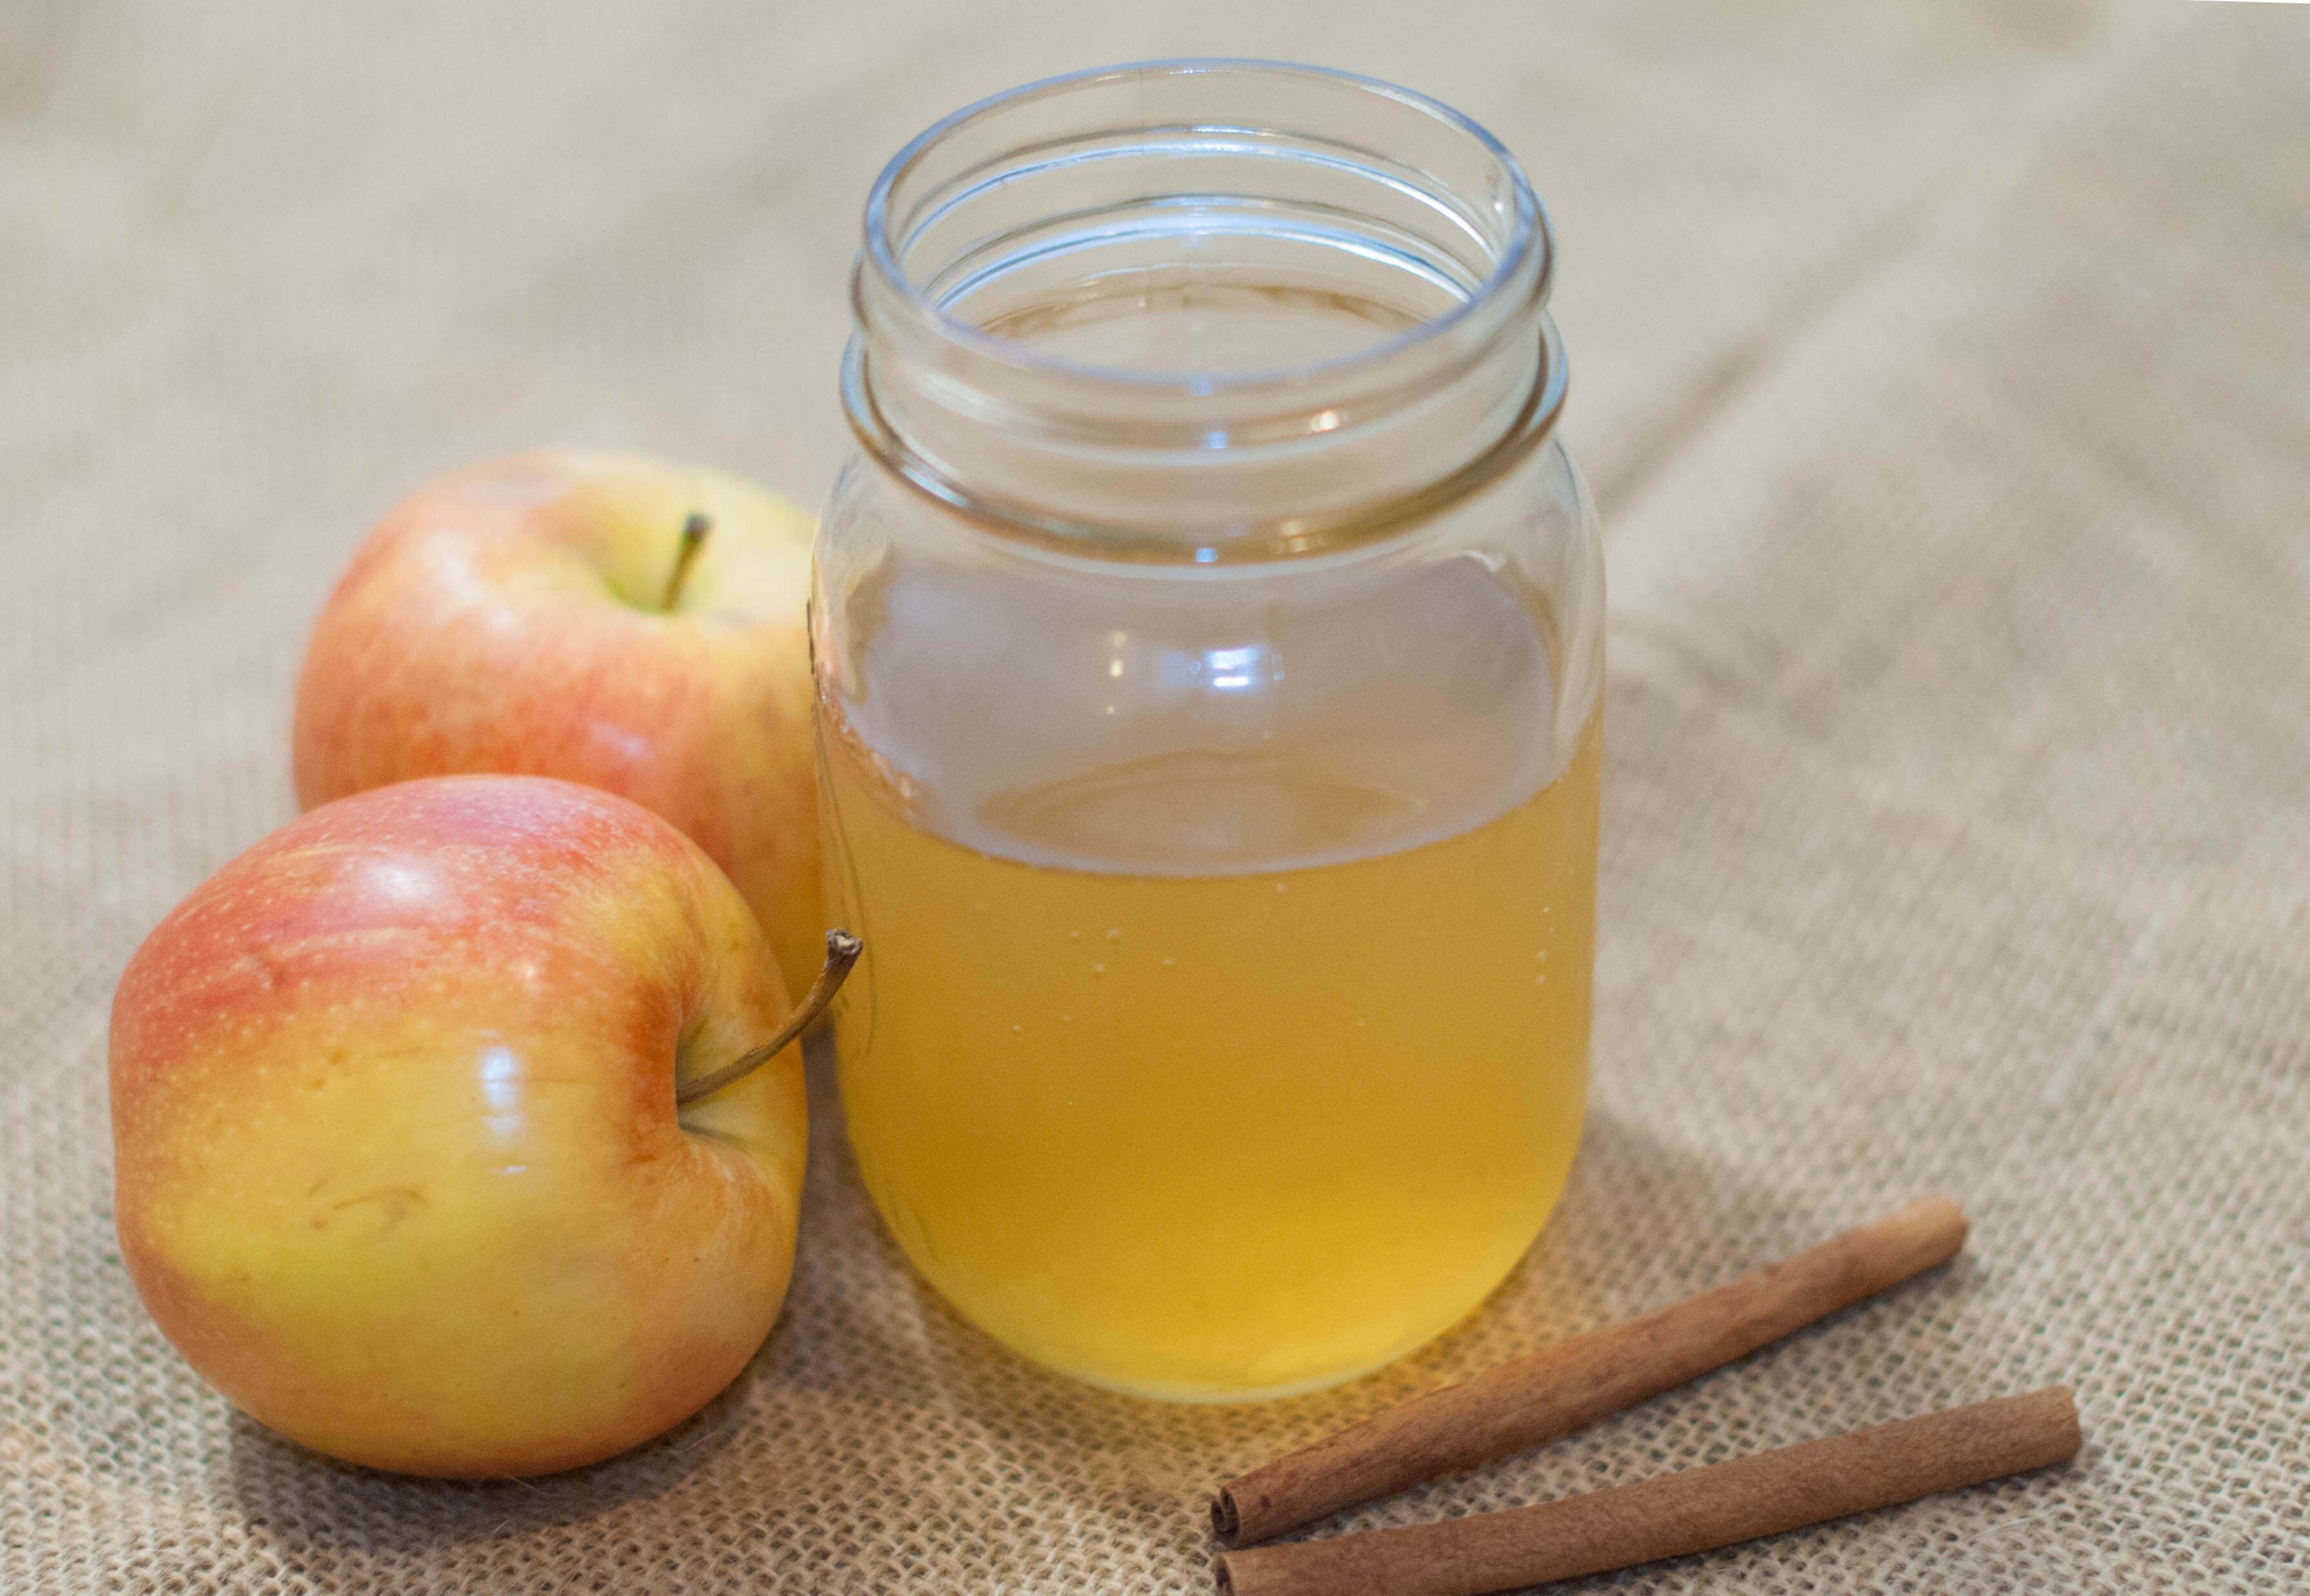 Fermented probiotic-rich tea, or kombucha, is one great way to add probiotics to your body in a real food way. Here's a great apple spiced kombucha recipe.